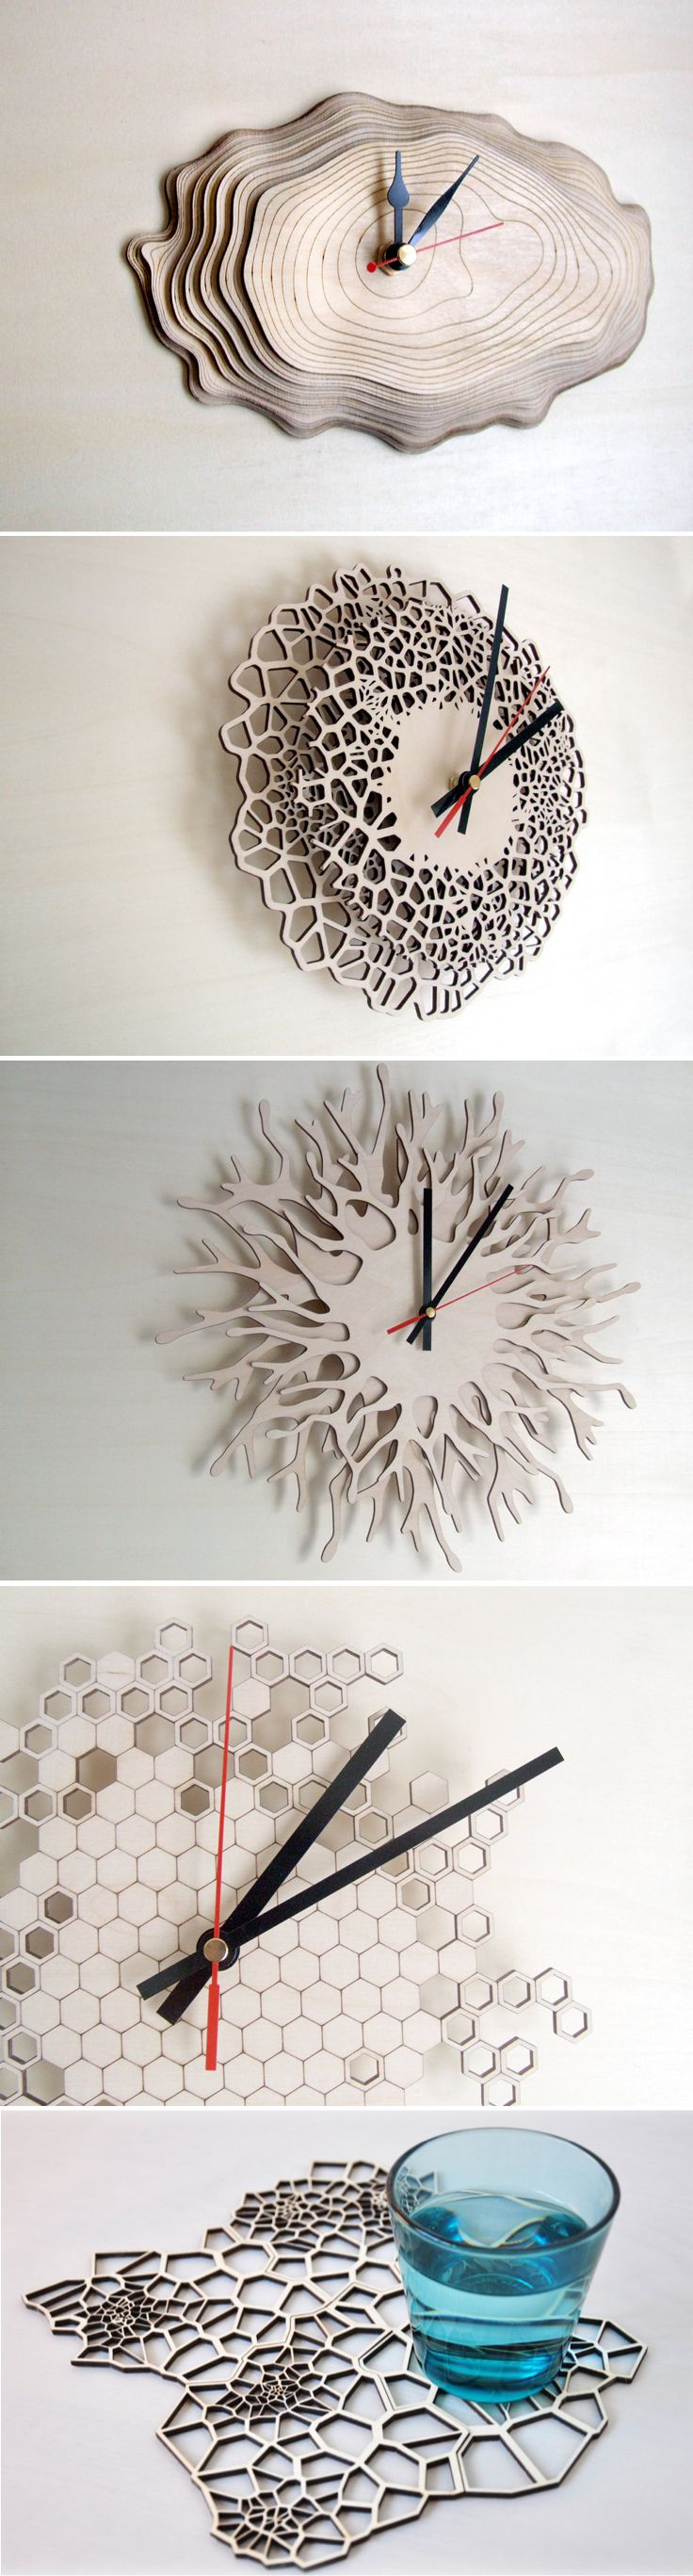 Asymmetree Nature-Inspired Wood Clocks                                                                                                                                                                                 Mehr